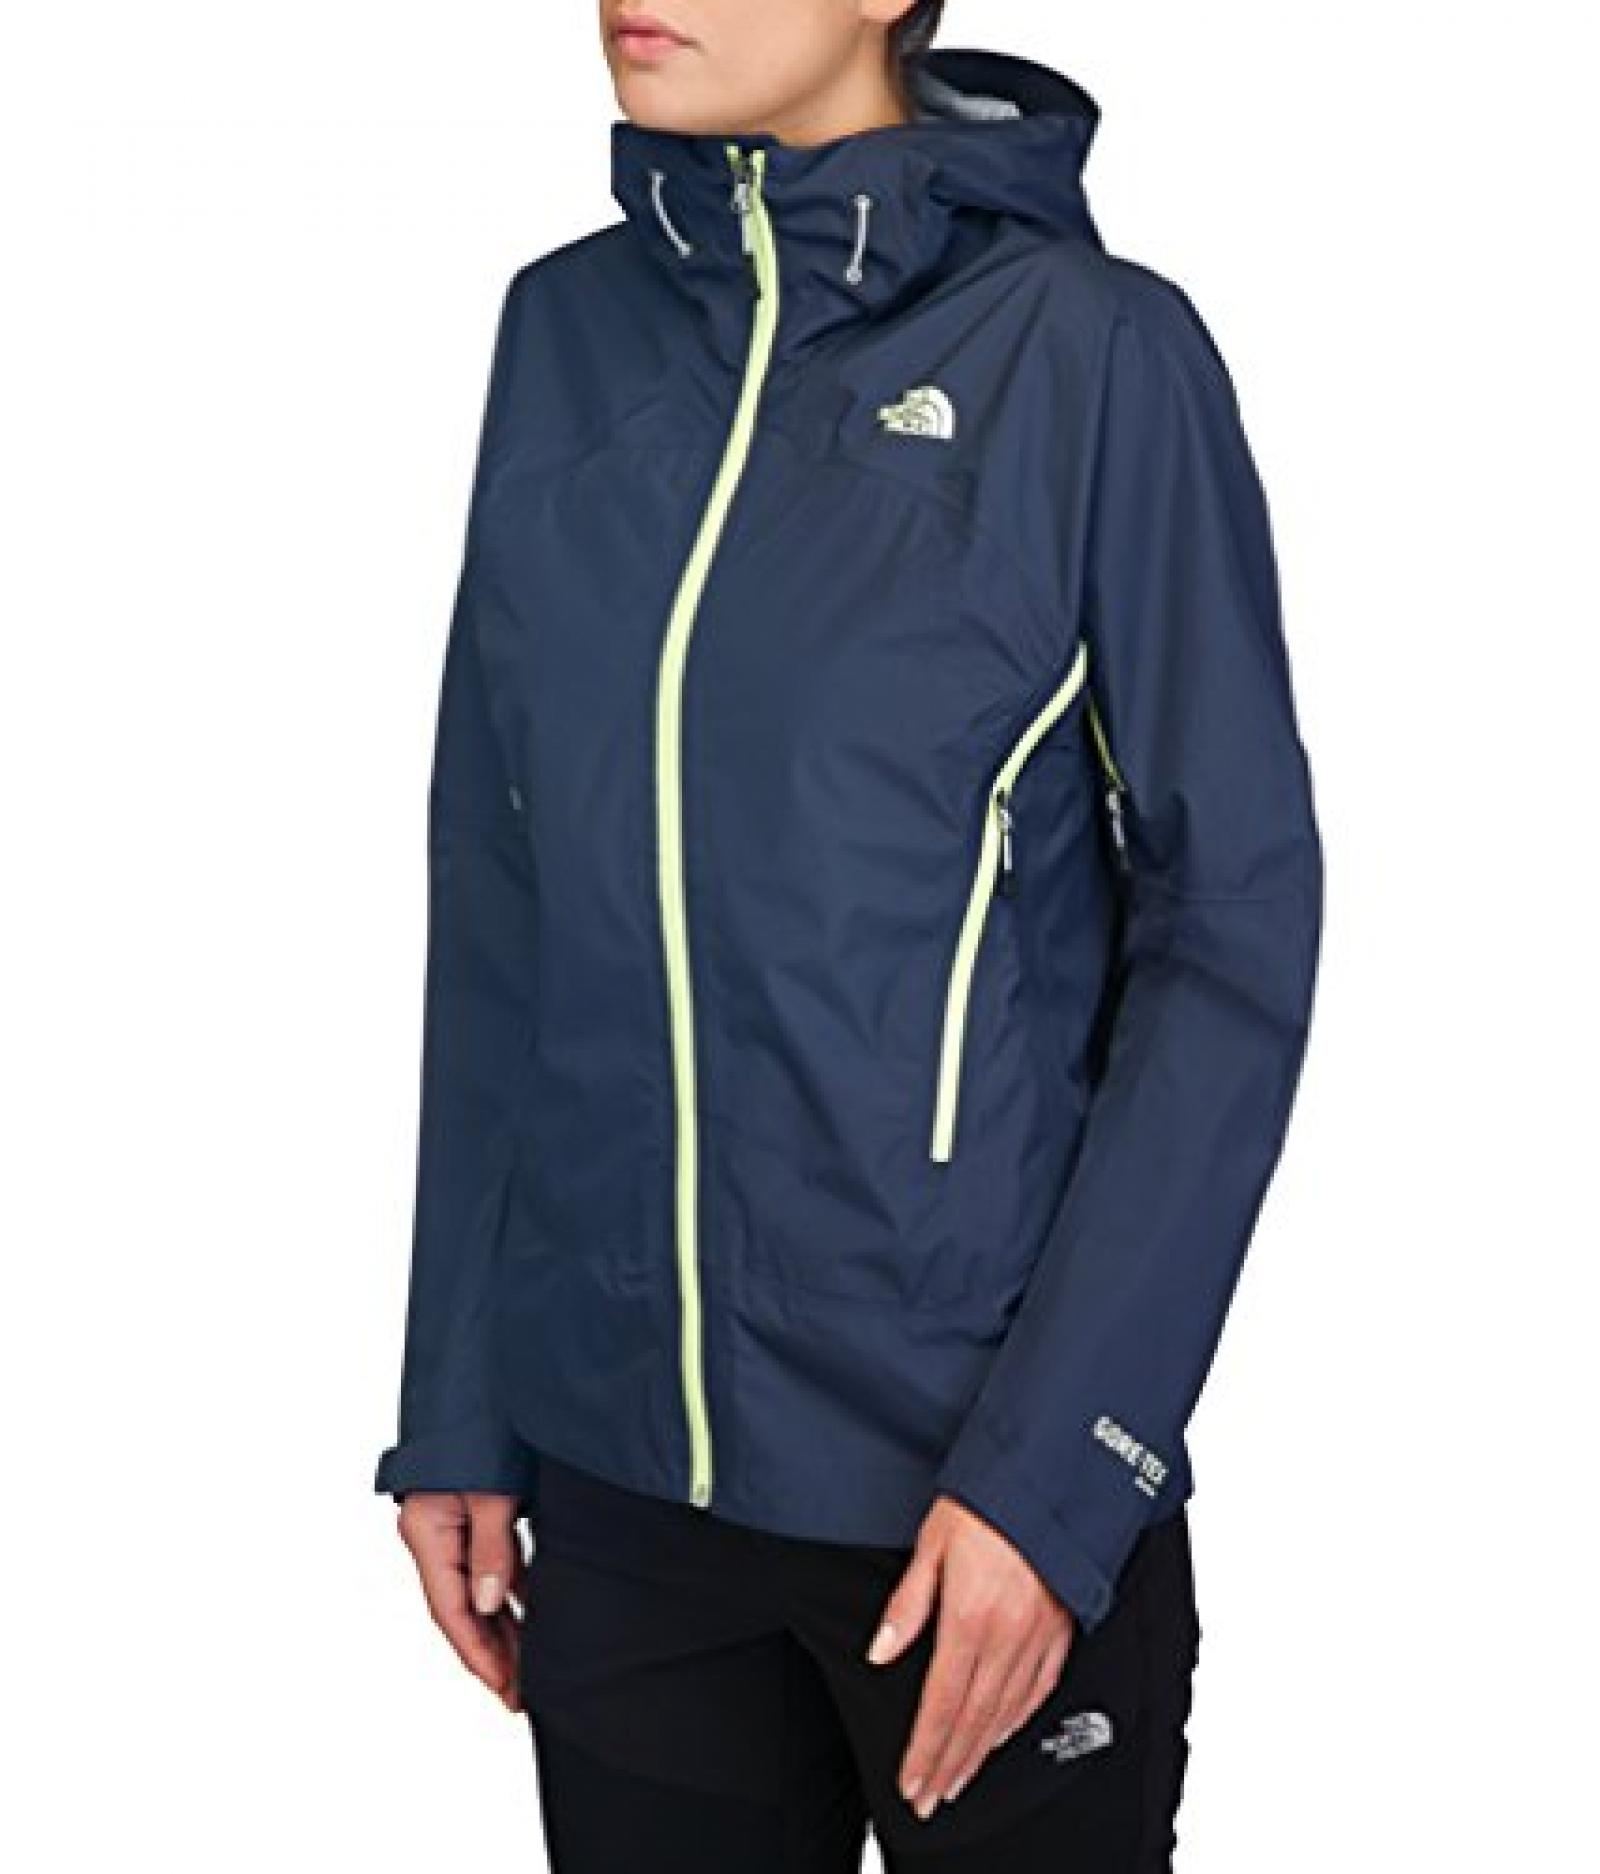 Damen Snowboard Jacke The North Face Superhype Jacket